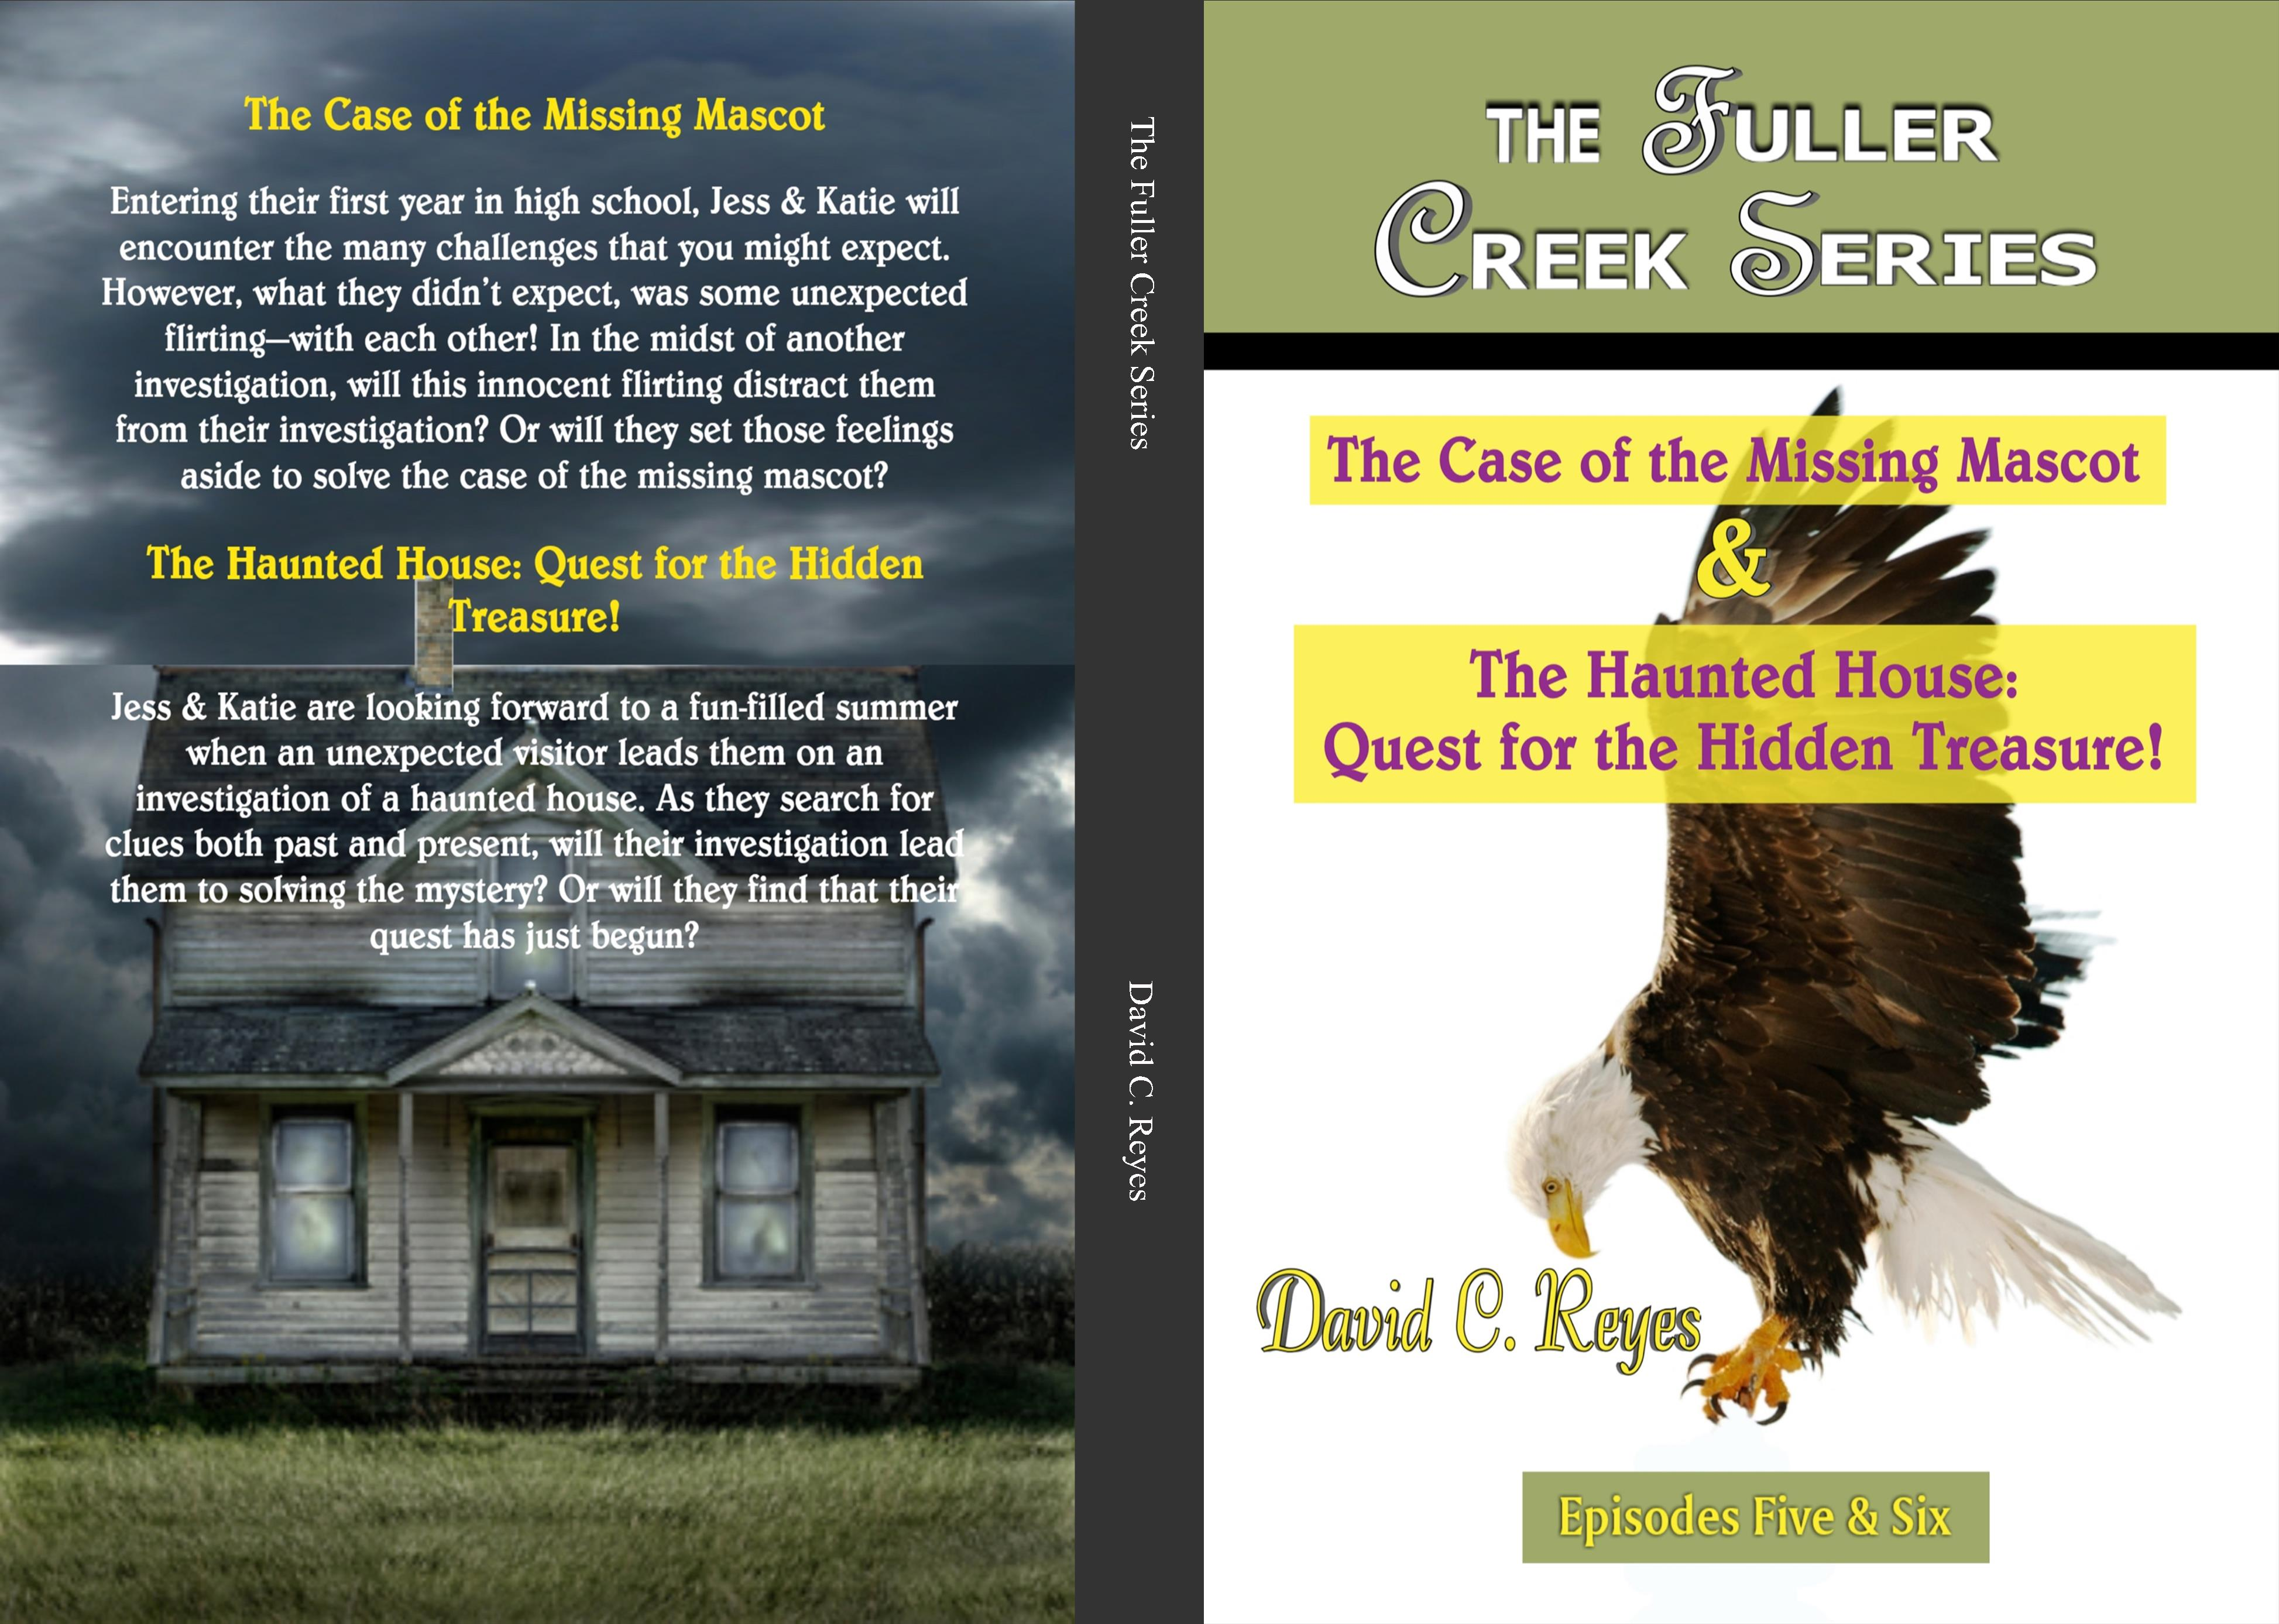 The Fuller Creek Series cover image